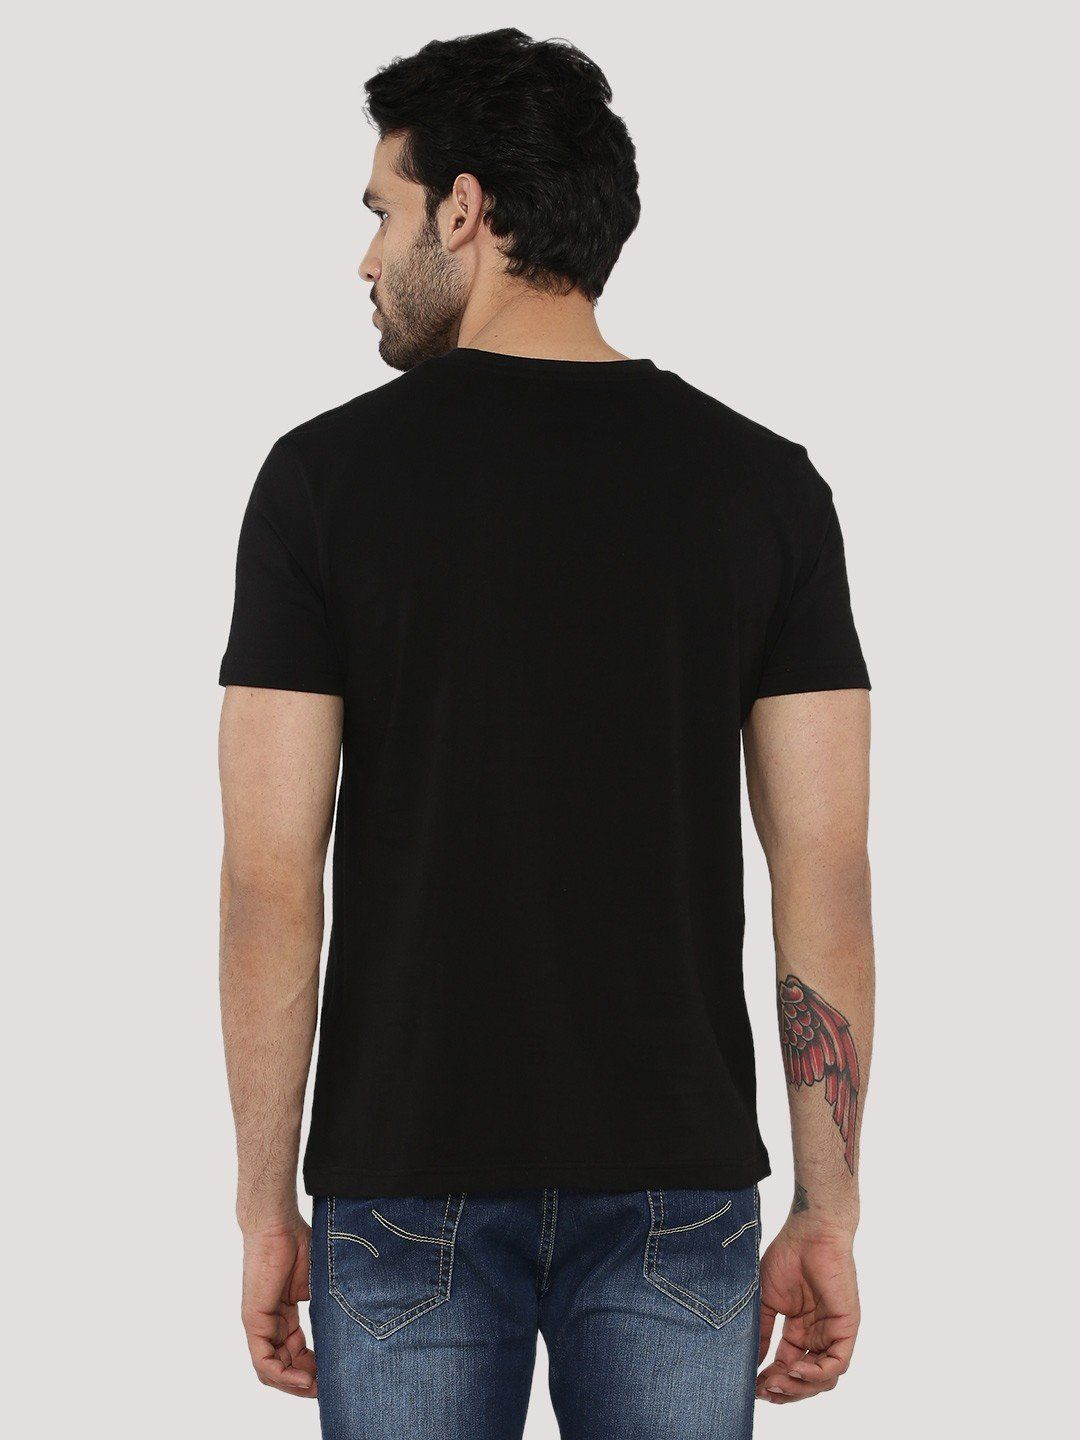 Narcos And Tacos Black T-Shirt - Fighting Fame  - 3